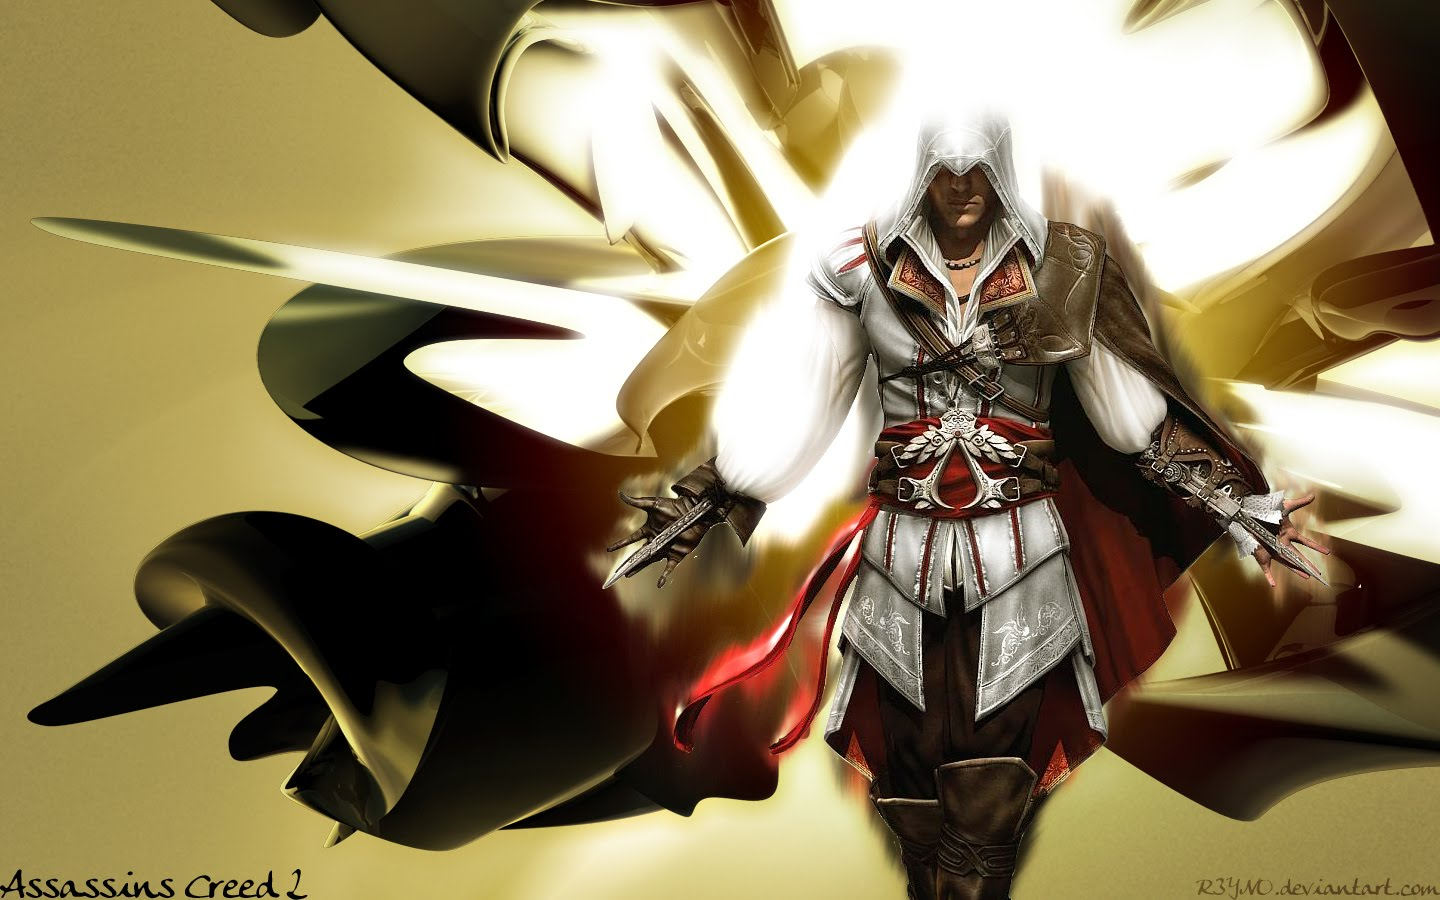 Assassin's Creed 2 Wallpaper for Xbox 360